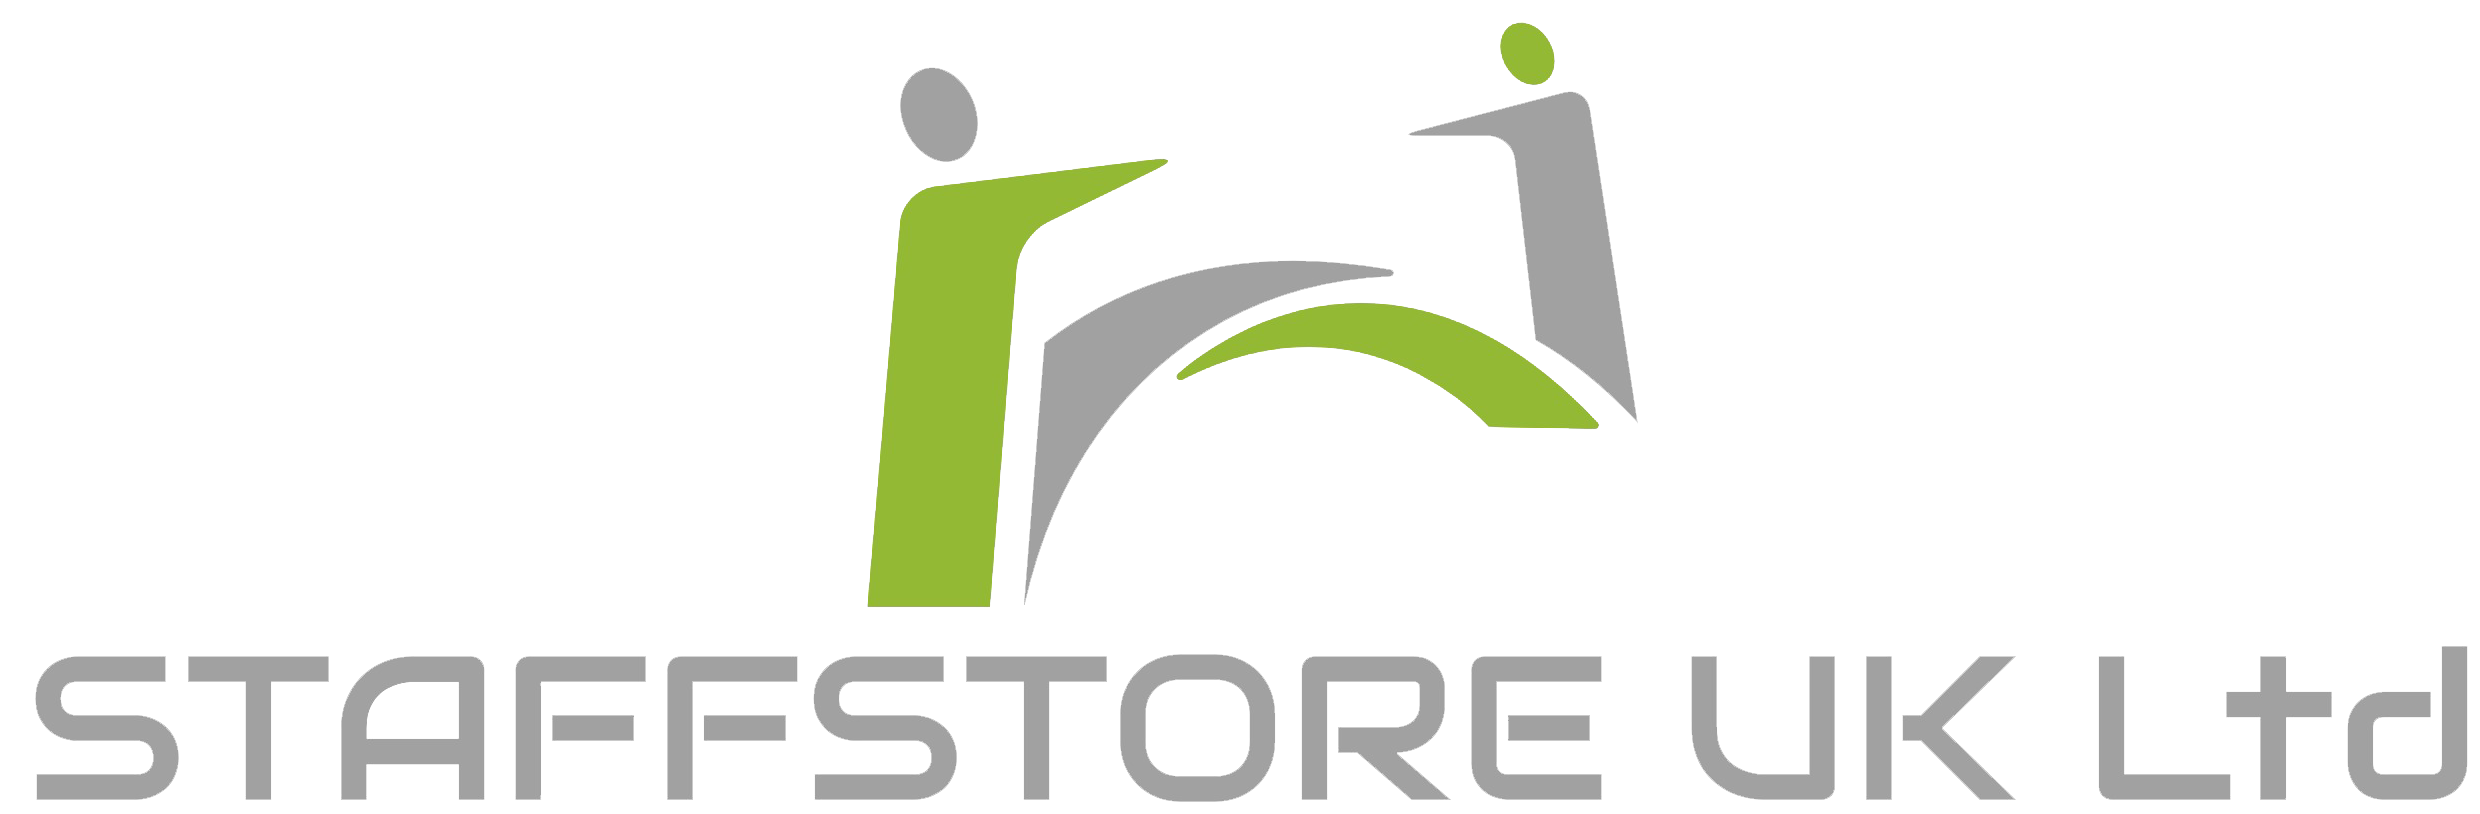 Staffstore UK